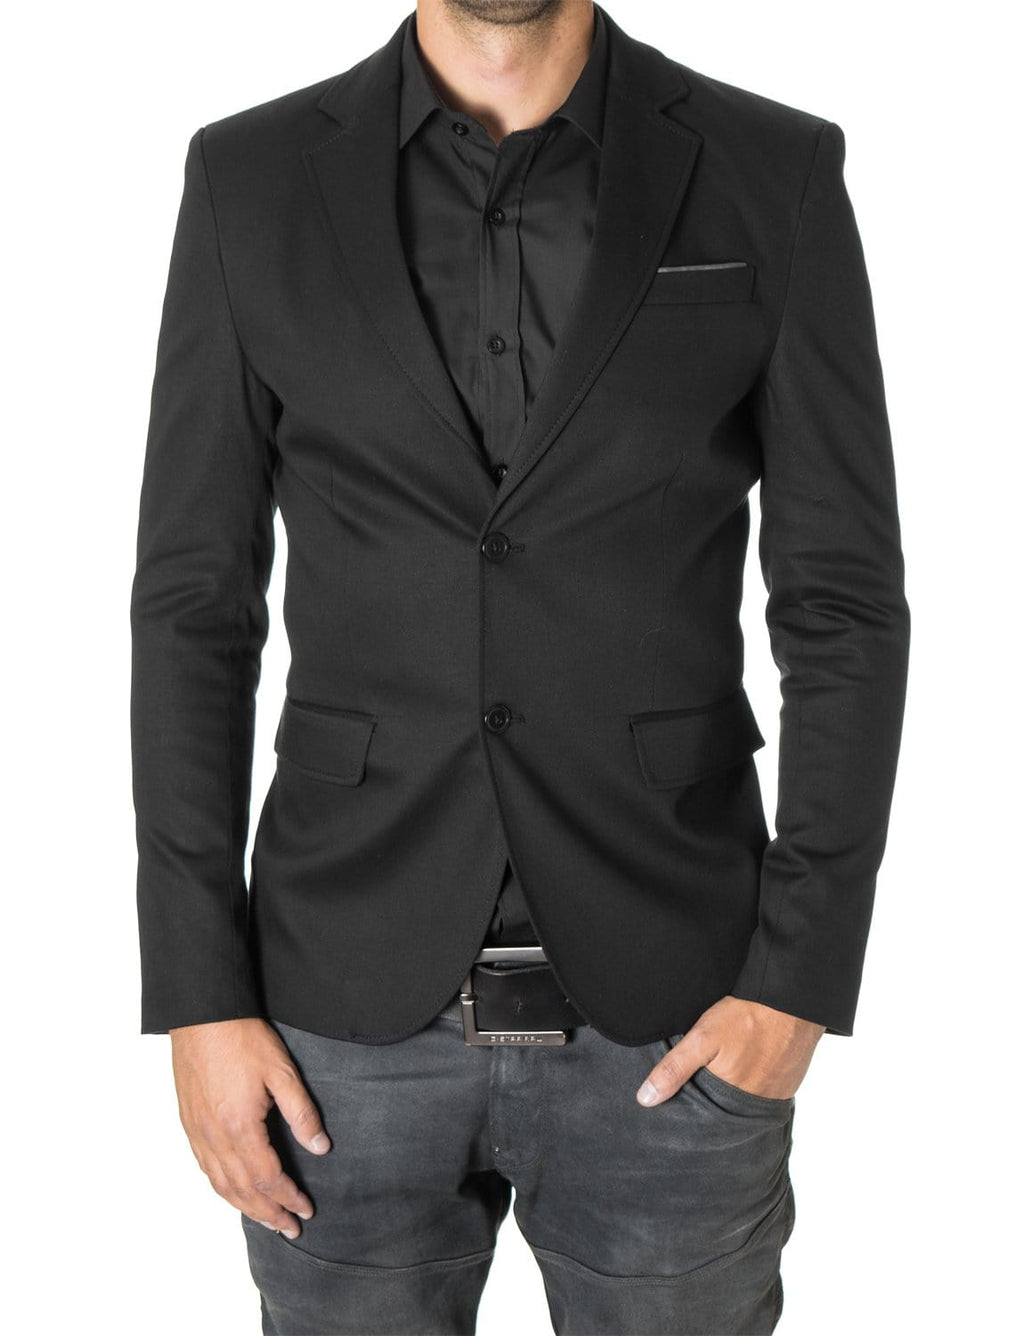 Mens slim fit 2 buttons cotton blazer sport coat black (MOD14517B) - MODERNO